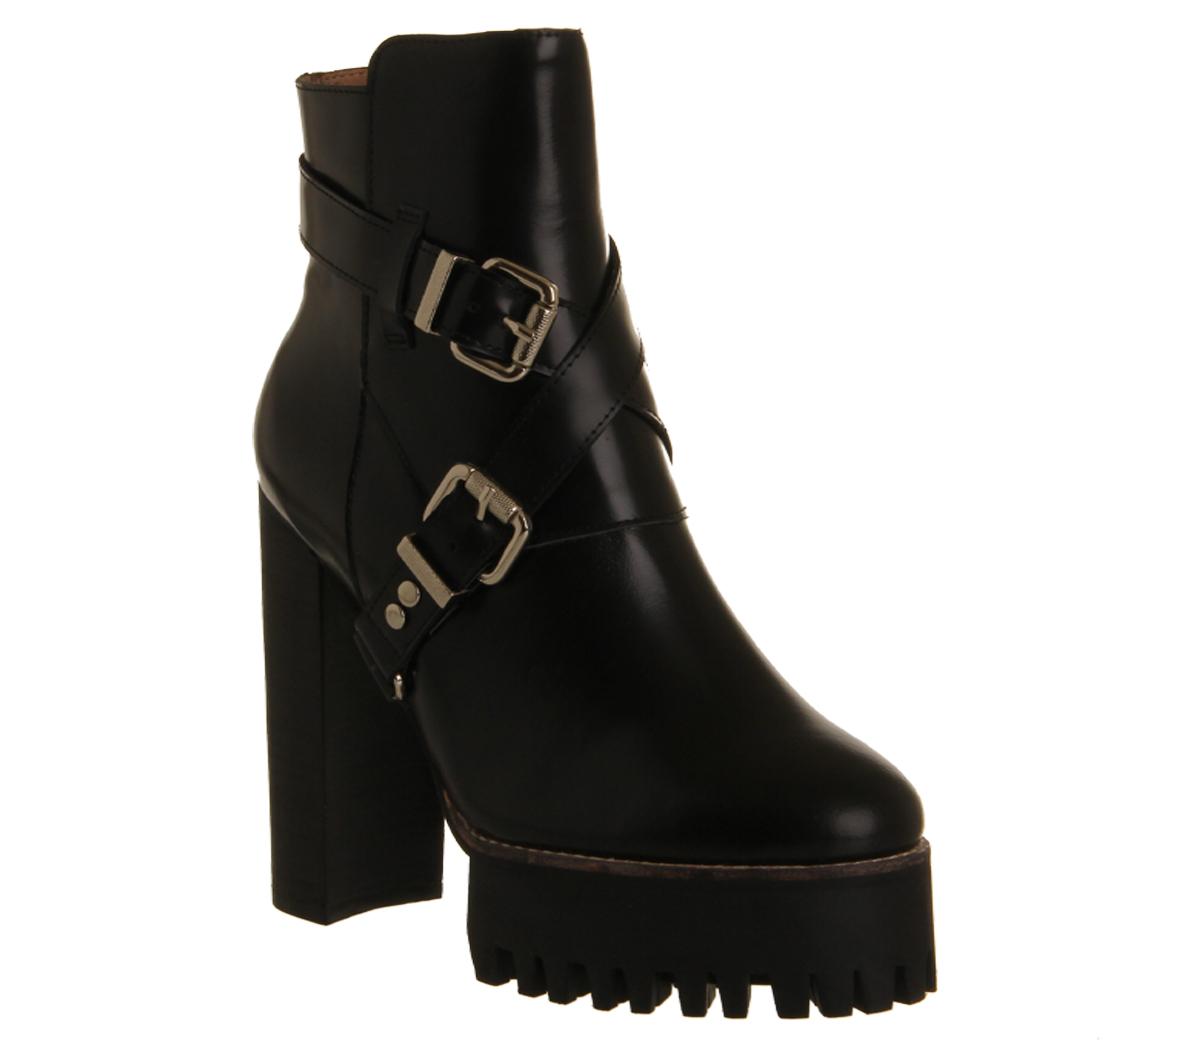 Jeffrey Campbell Mercer Dp Strap Boot Black Leather - Ankle Boots